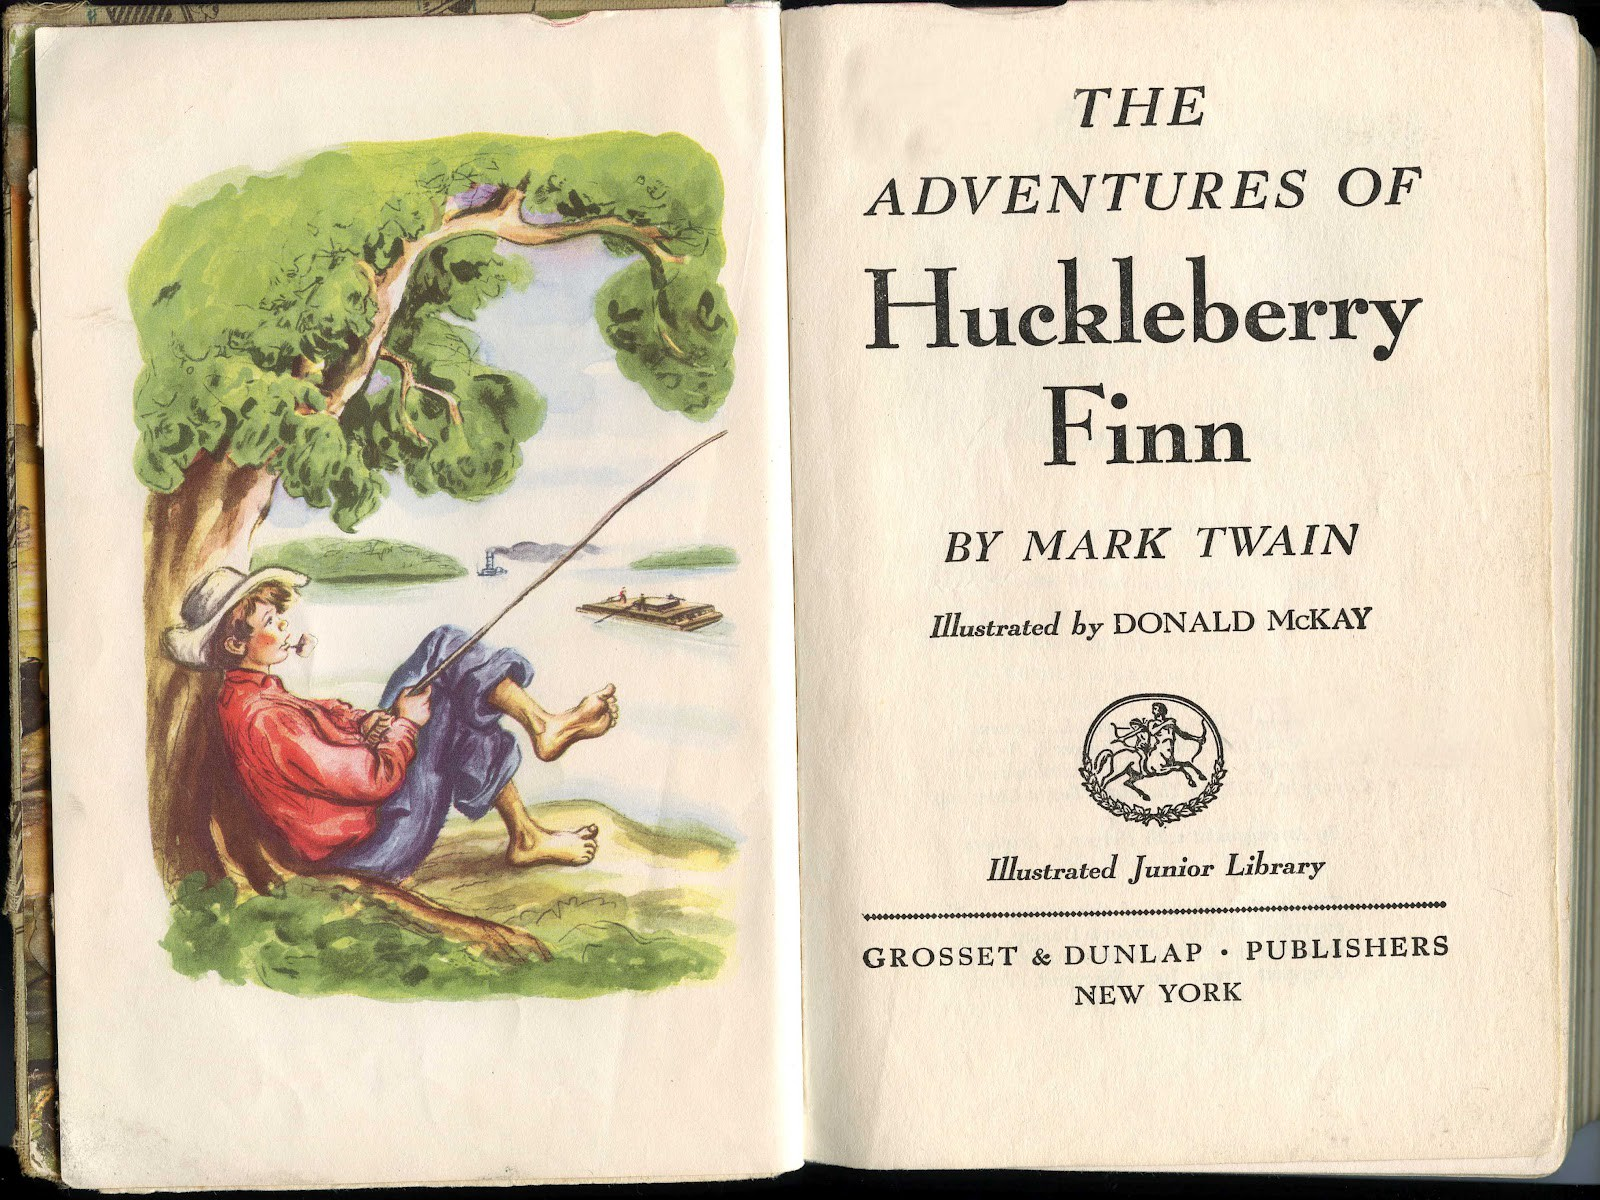 huck finn wasn t banned from a philly area high school here s which has been widely reported in other media about friends central school in wynnewood pa removing the adventures of huckleberry finn from their